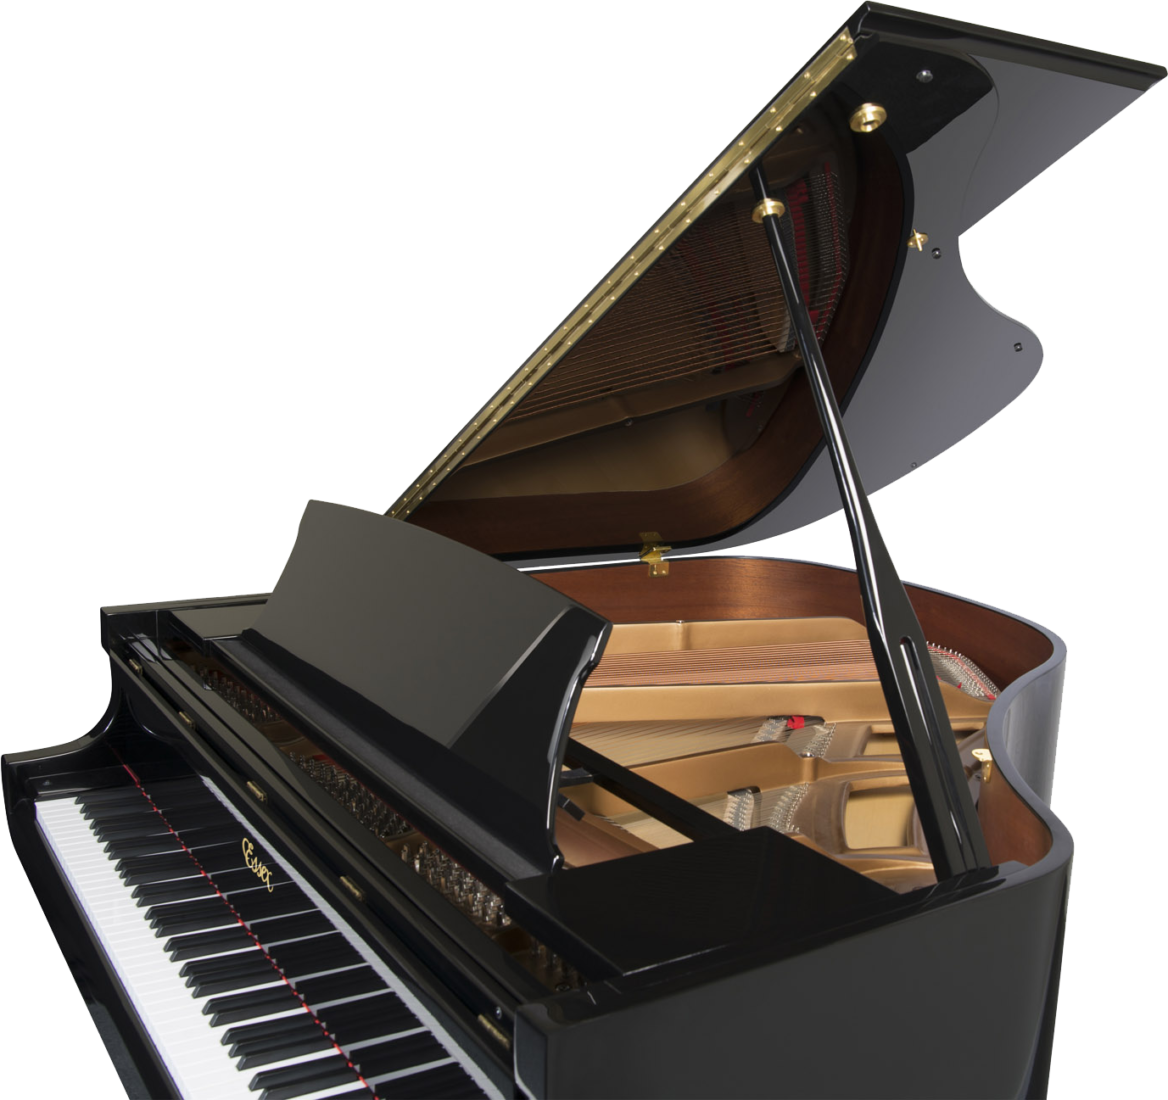 piano-cola-essex-egp155-nuevo-negro-lateral-03